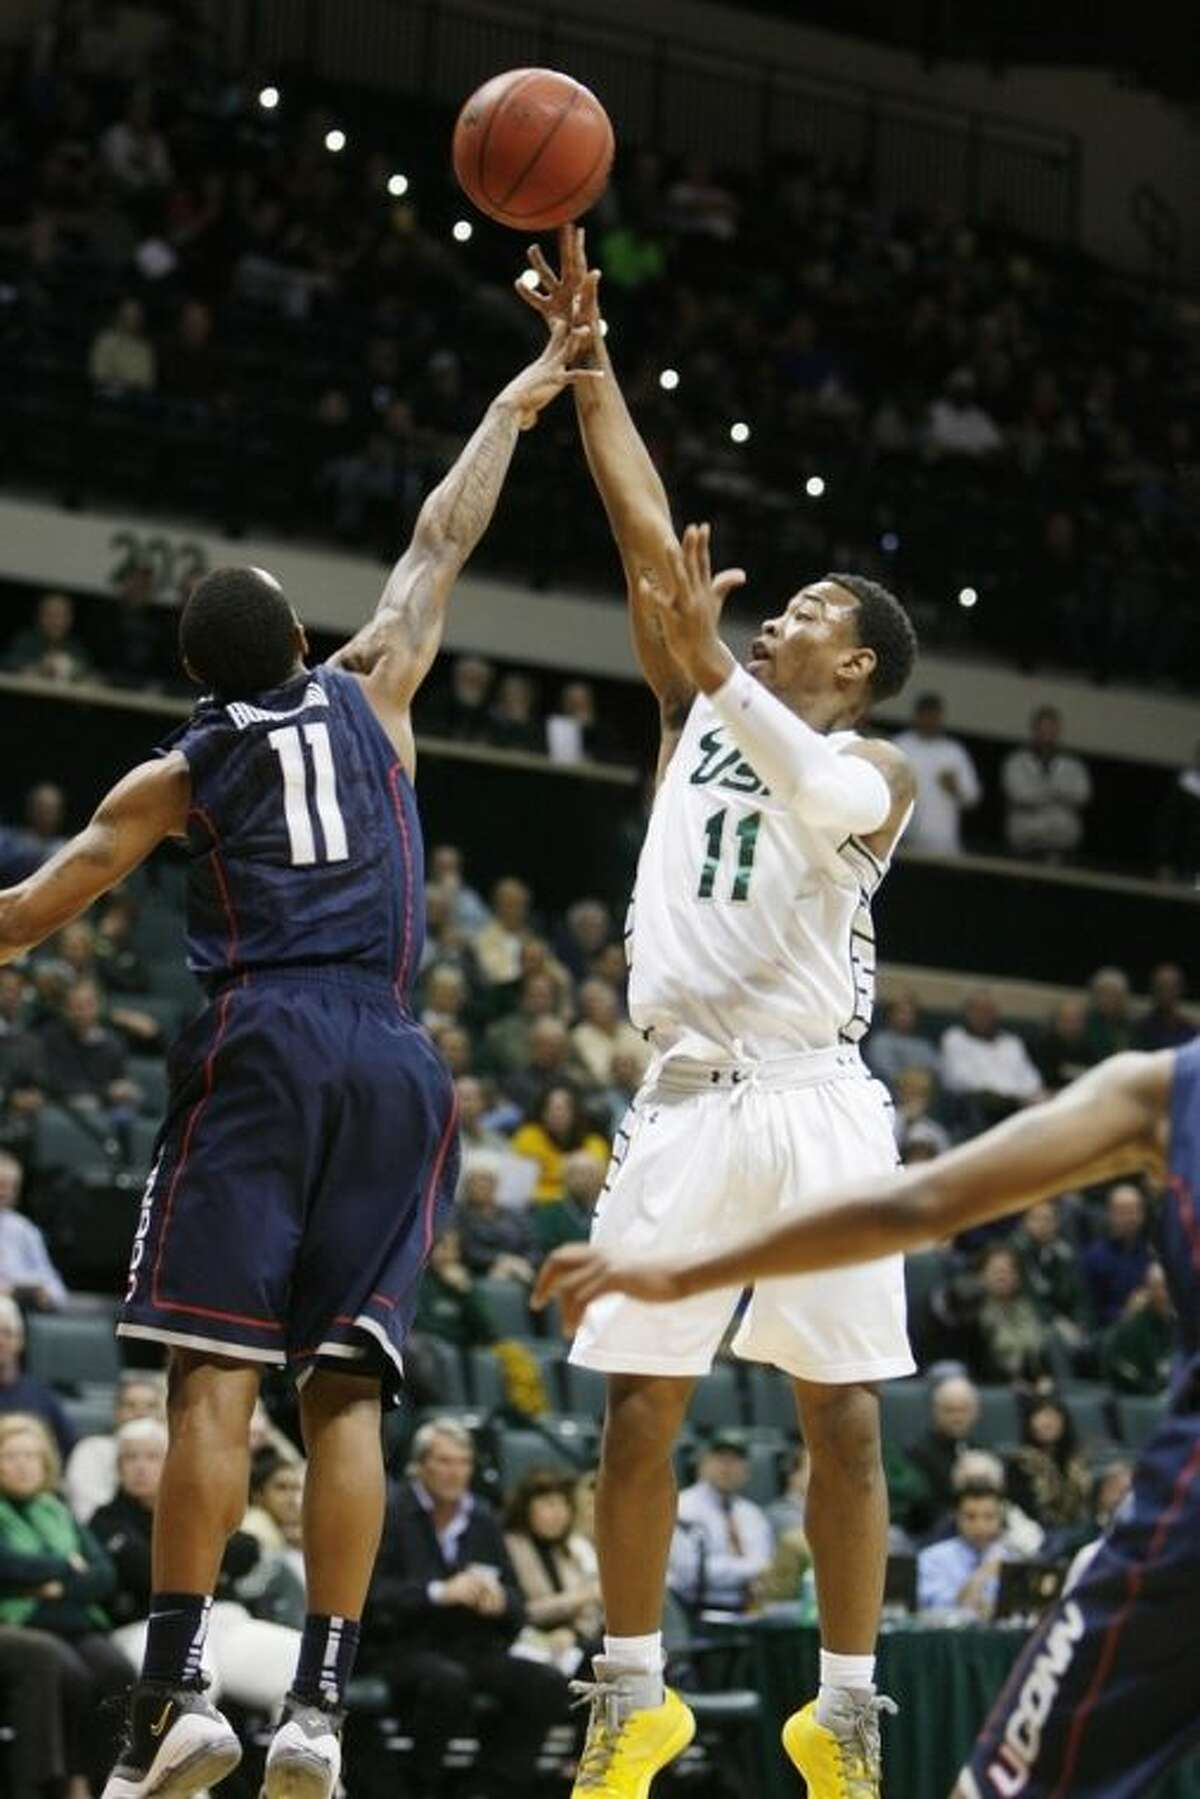 South Florida's Anthony Collins shoots over Connecticut's Ryan Boatright during the first half of an NCAA college basketball game Wednesday, March 6, 2013, in Tampa, Fla. (AP Photo/The Tampa Bay Times, Octavio Jones) TAMPA, CITRUS COUNTY, PORT CHARLOTTE, AND BROOKSVILLE HERNANDO TODAY OUT USA TODAY OUT